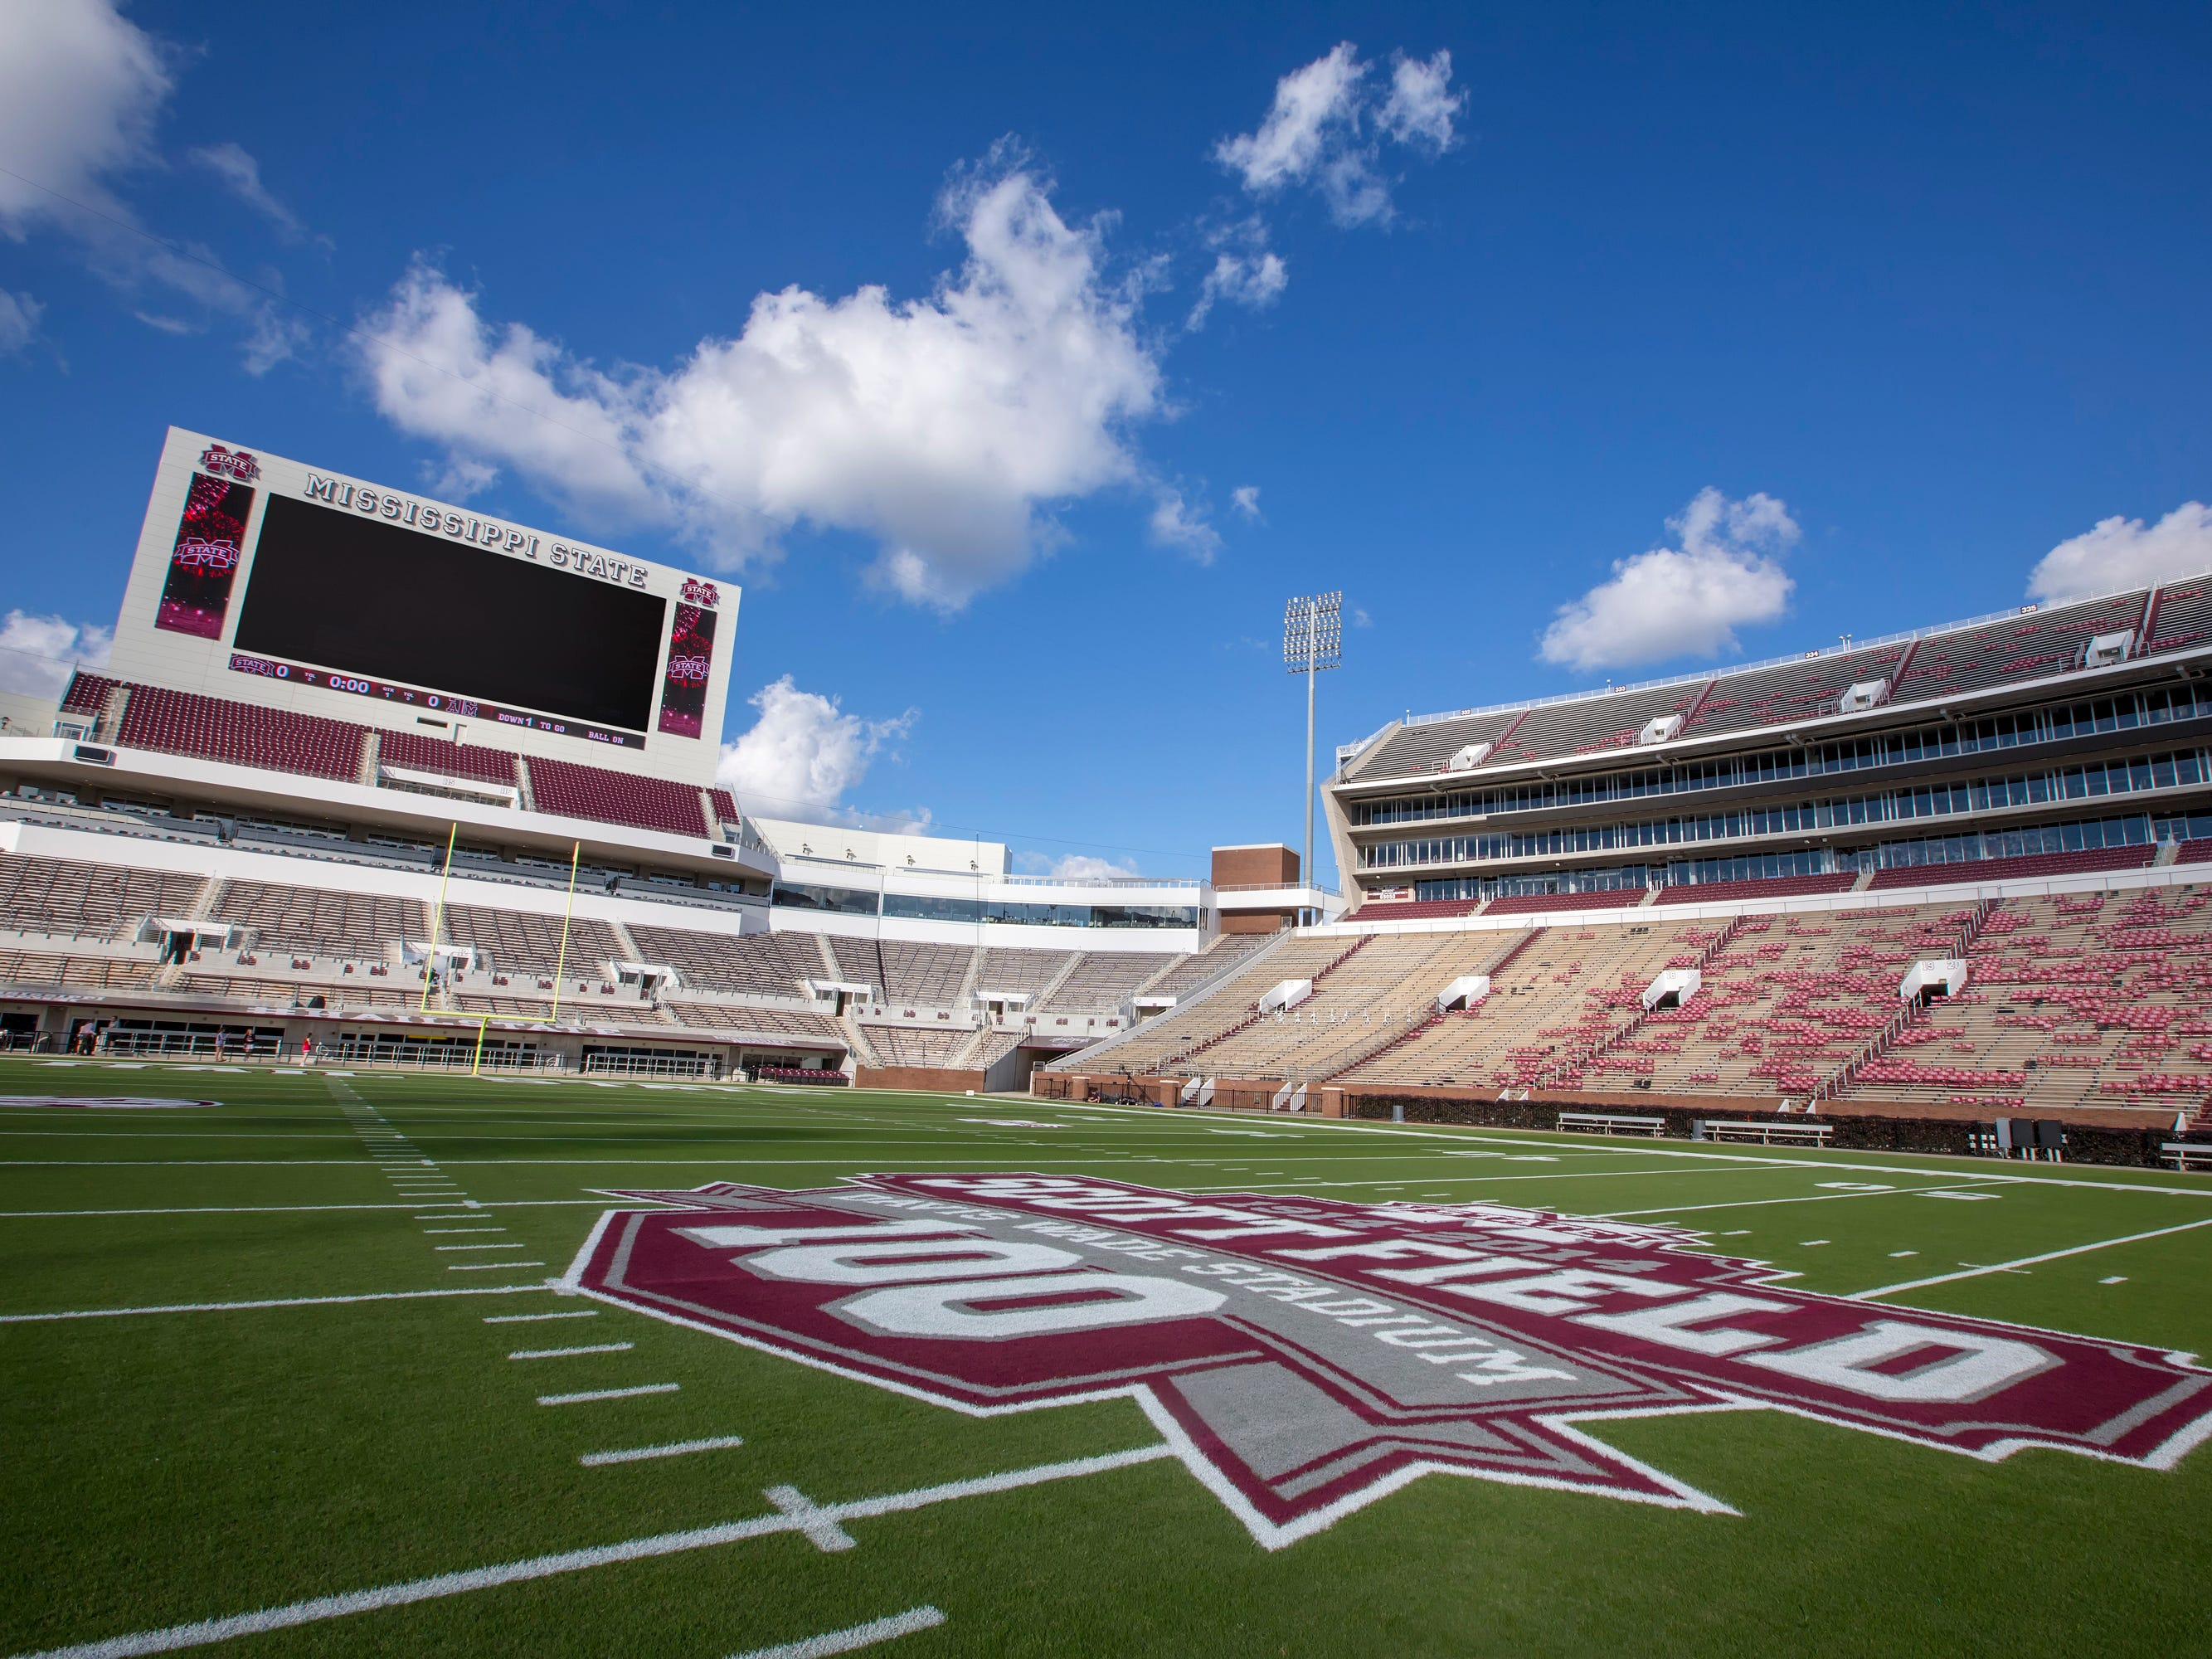 Mississippi: Mississippi State University's Davis Wade Stadium features modern elements while still complementing the campus' historic architecture.